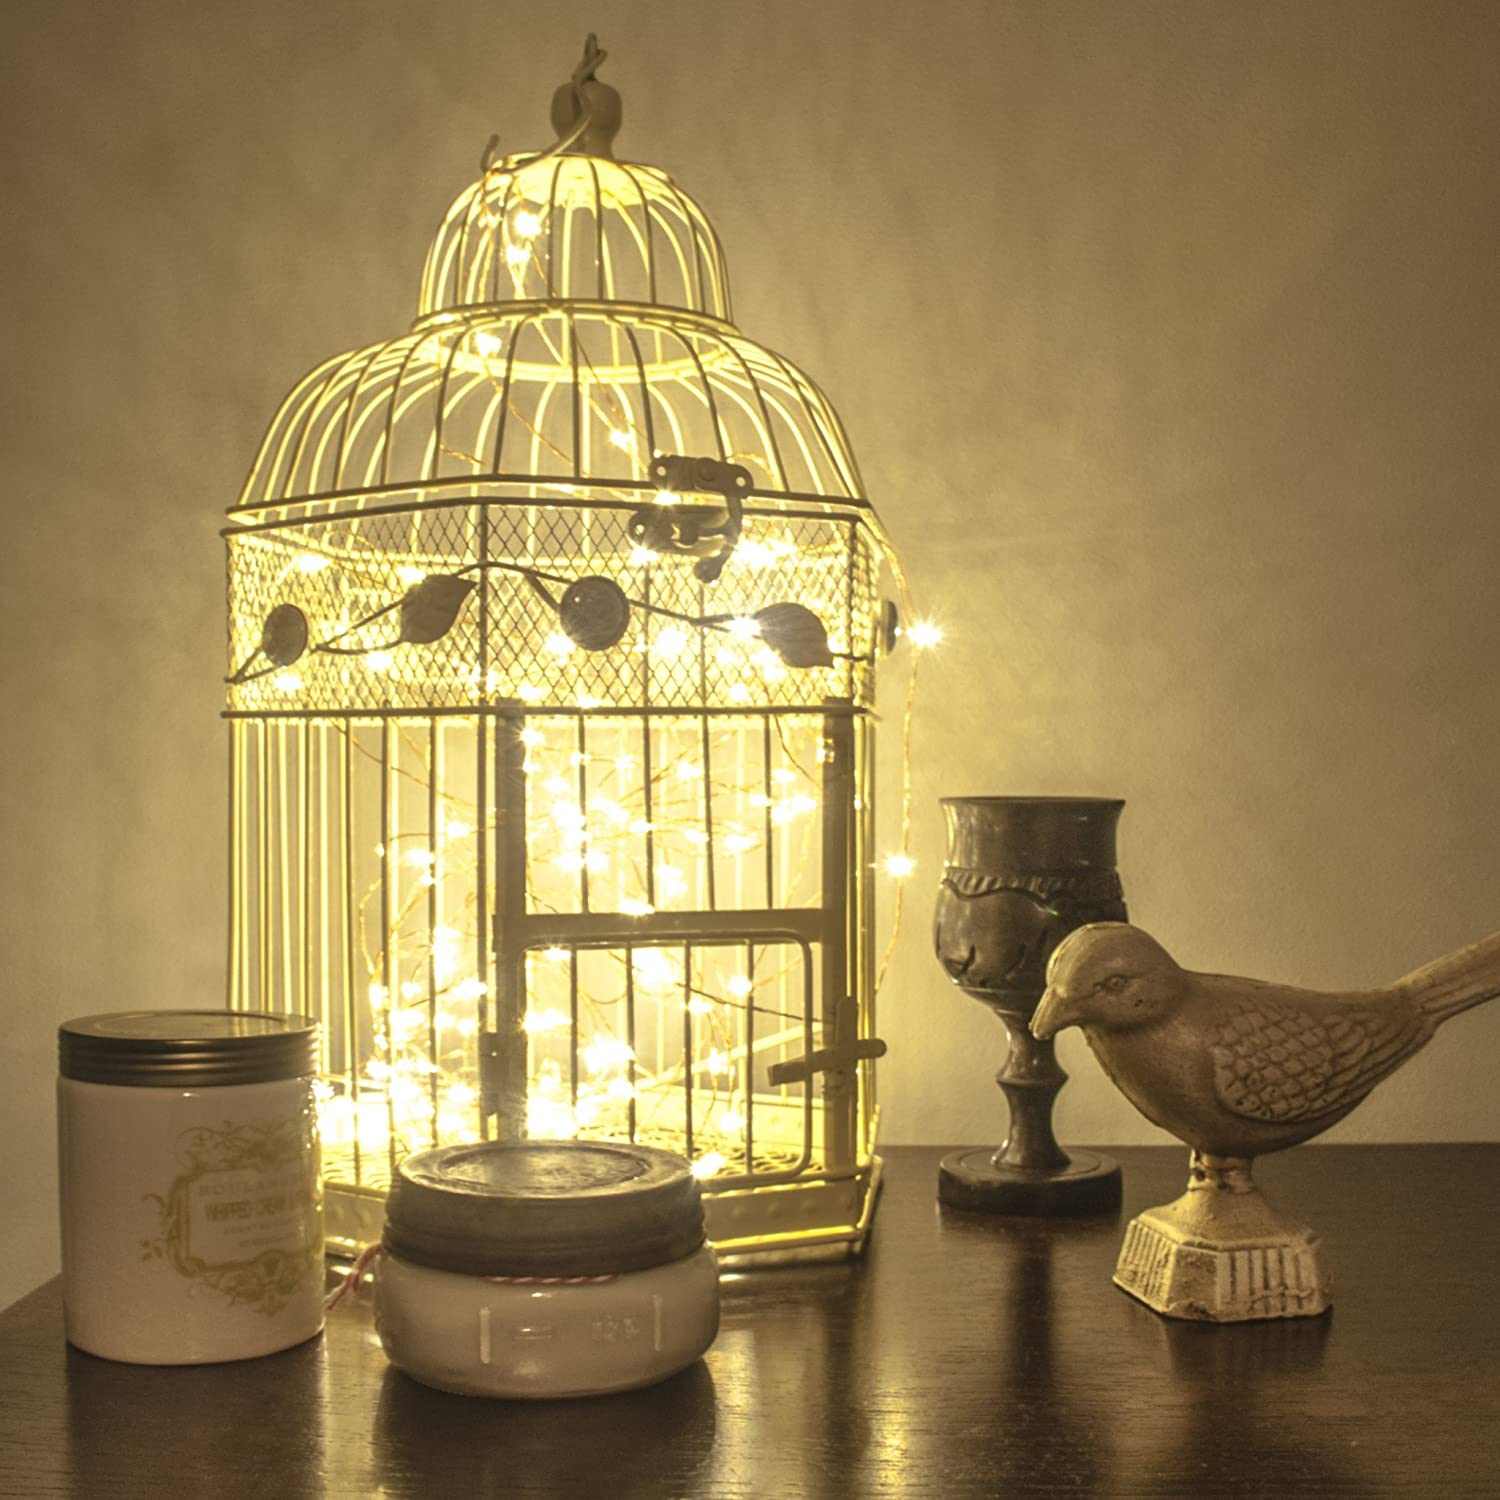 Lovely Lantern Lights for Bedroom